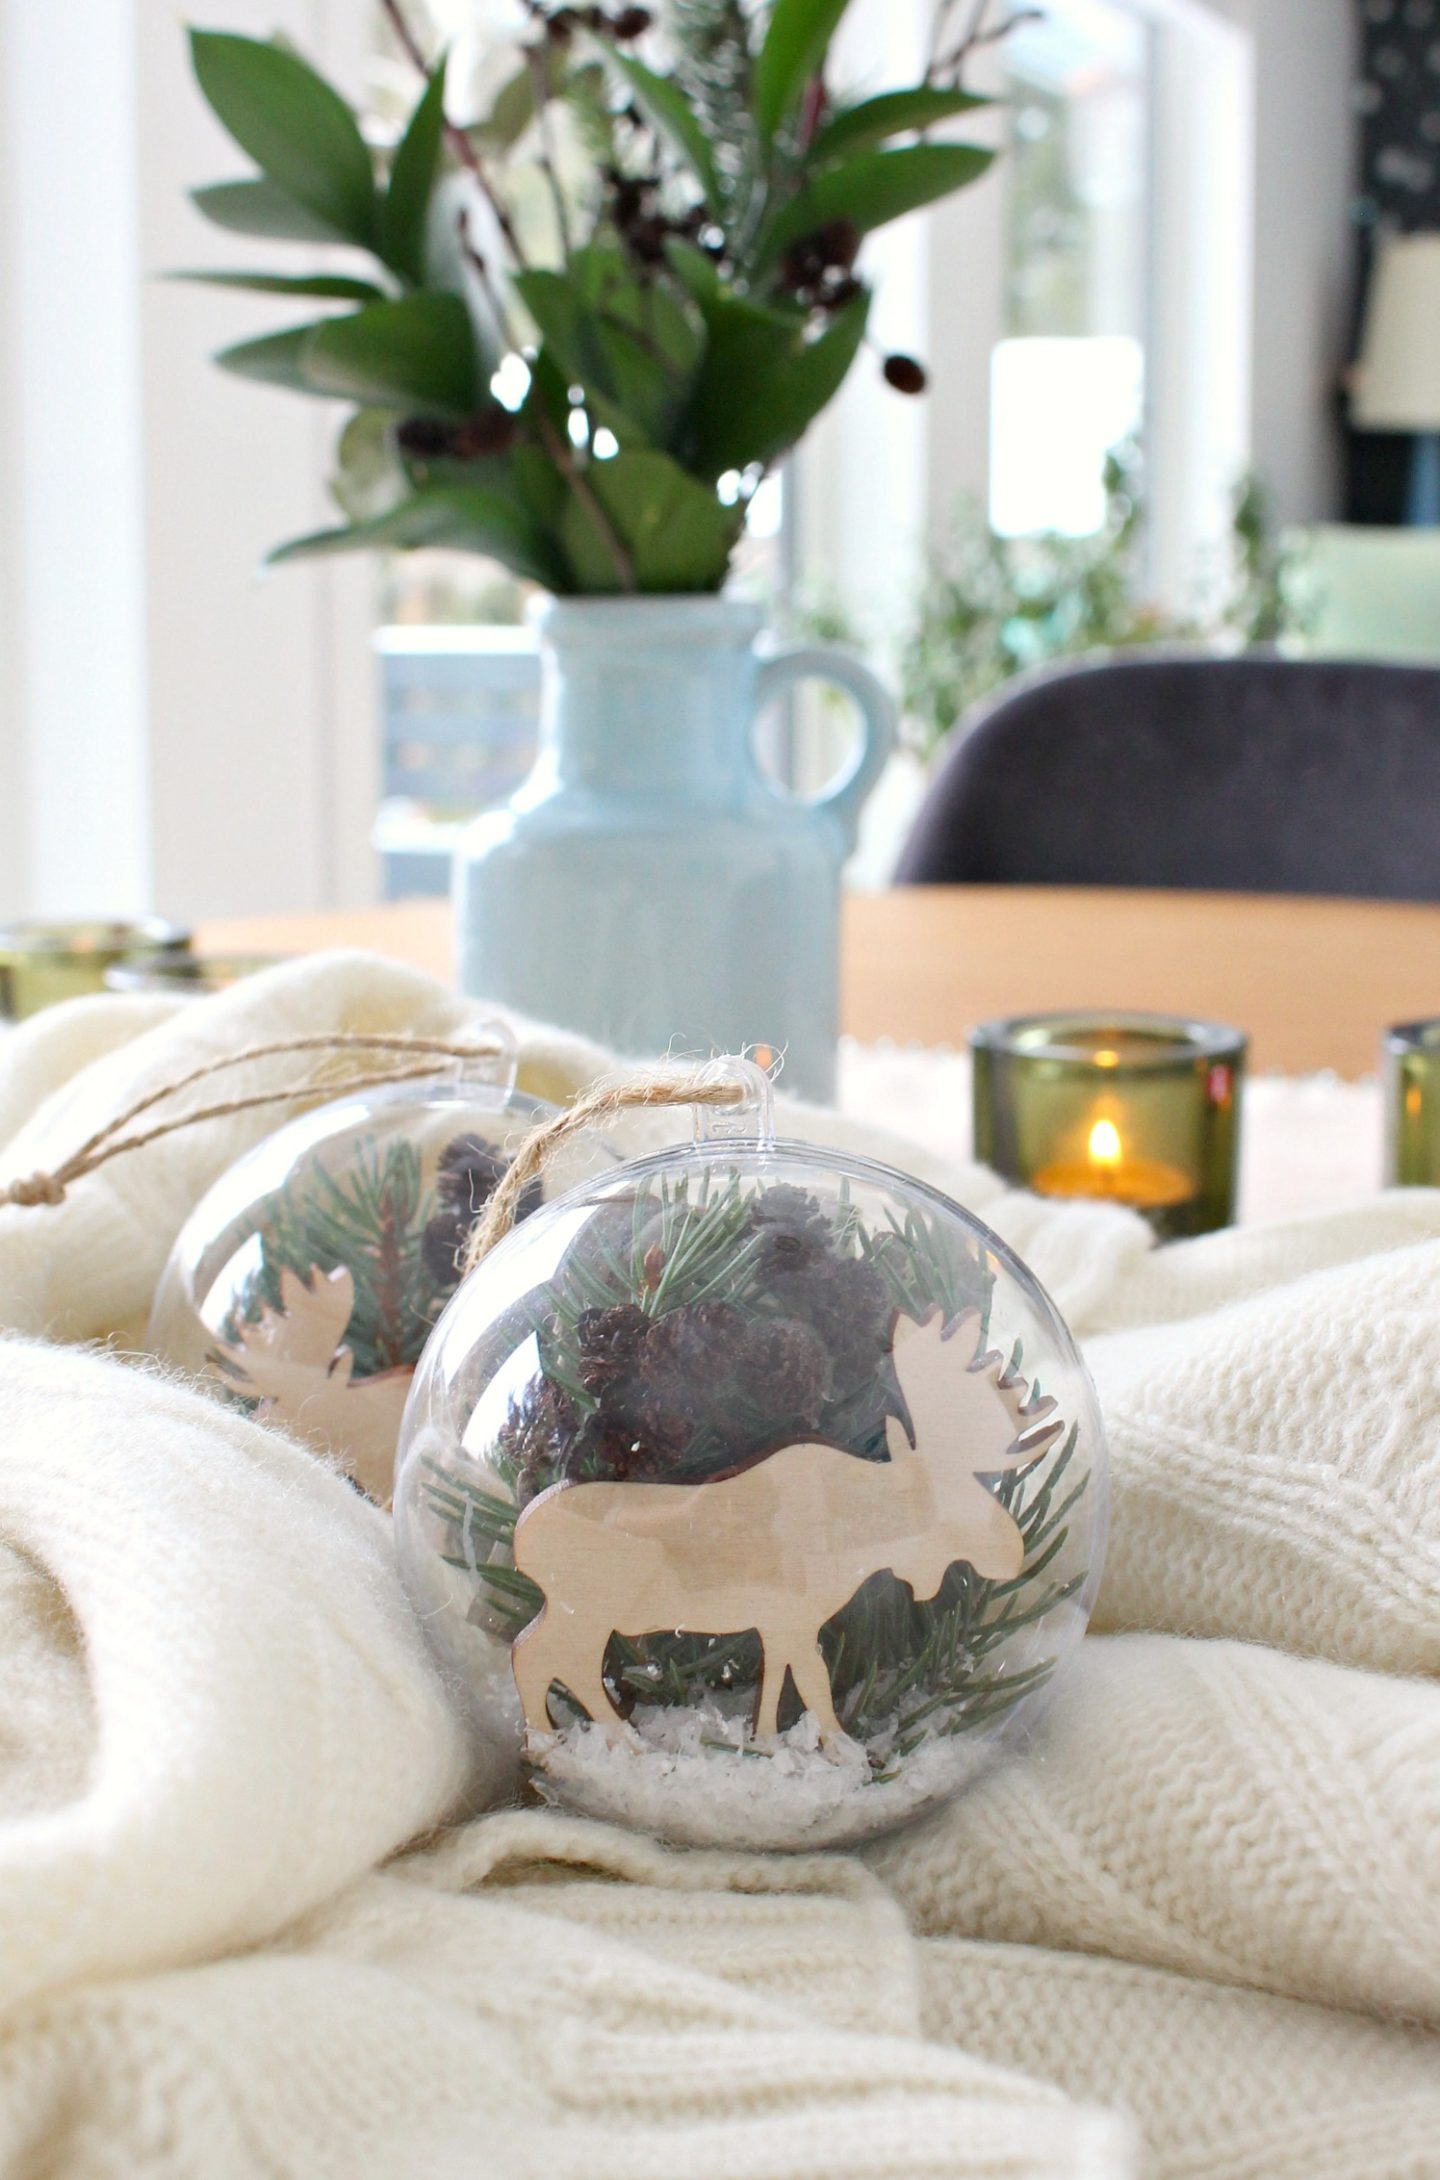 Nature Inspired DIY Ornament | Fillable Ornament Ideas